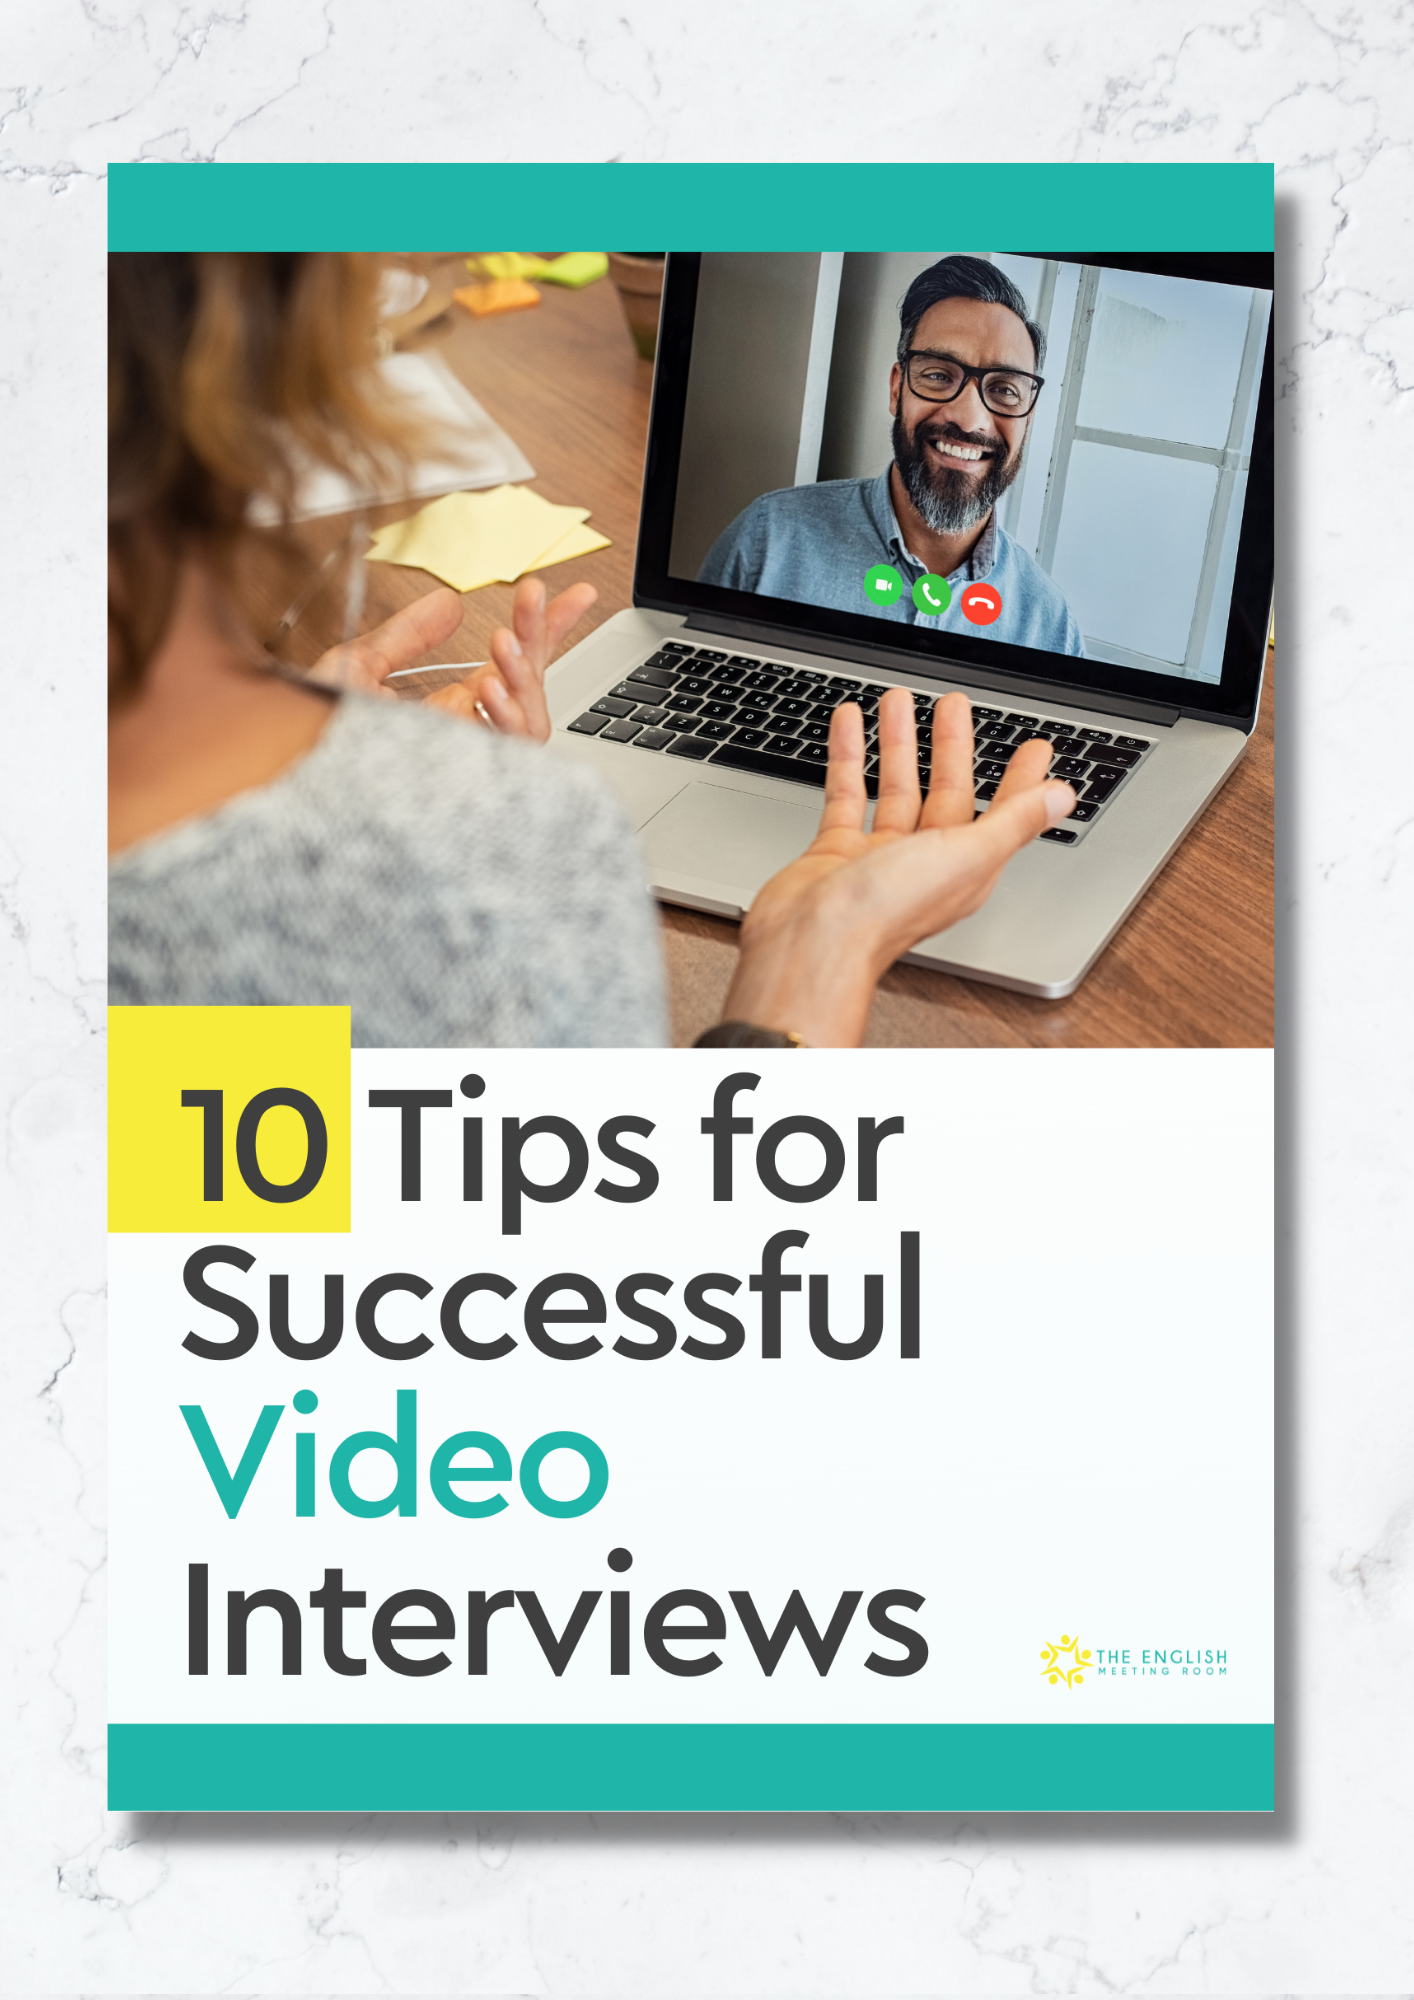 The cover of the guide with the title and an image of a woman being interviewed on a video meeting platform by a smiling and intelligent, middle-aged man.